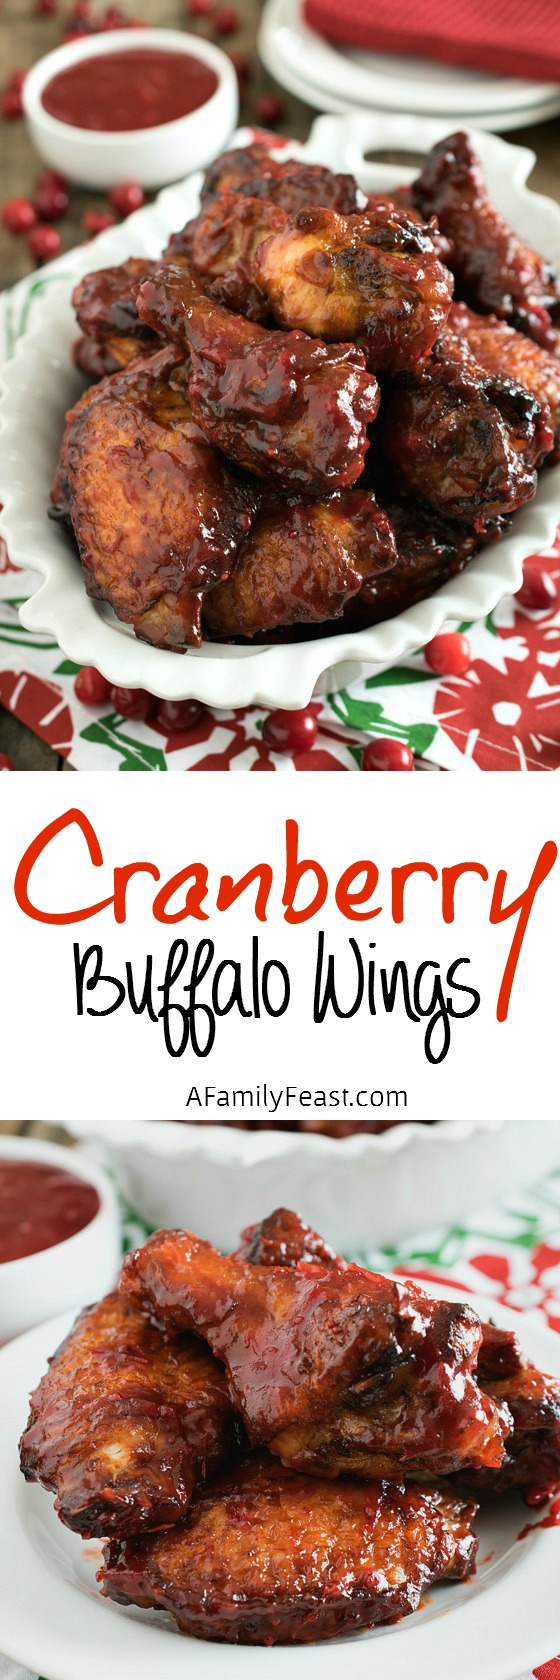 Cranberry Buffalo Wings - a delicious sweet-tart twist on a classic wings recipe. You've got to try these!